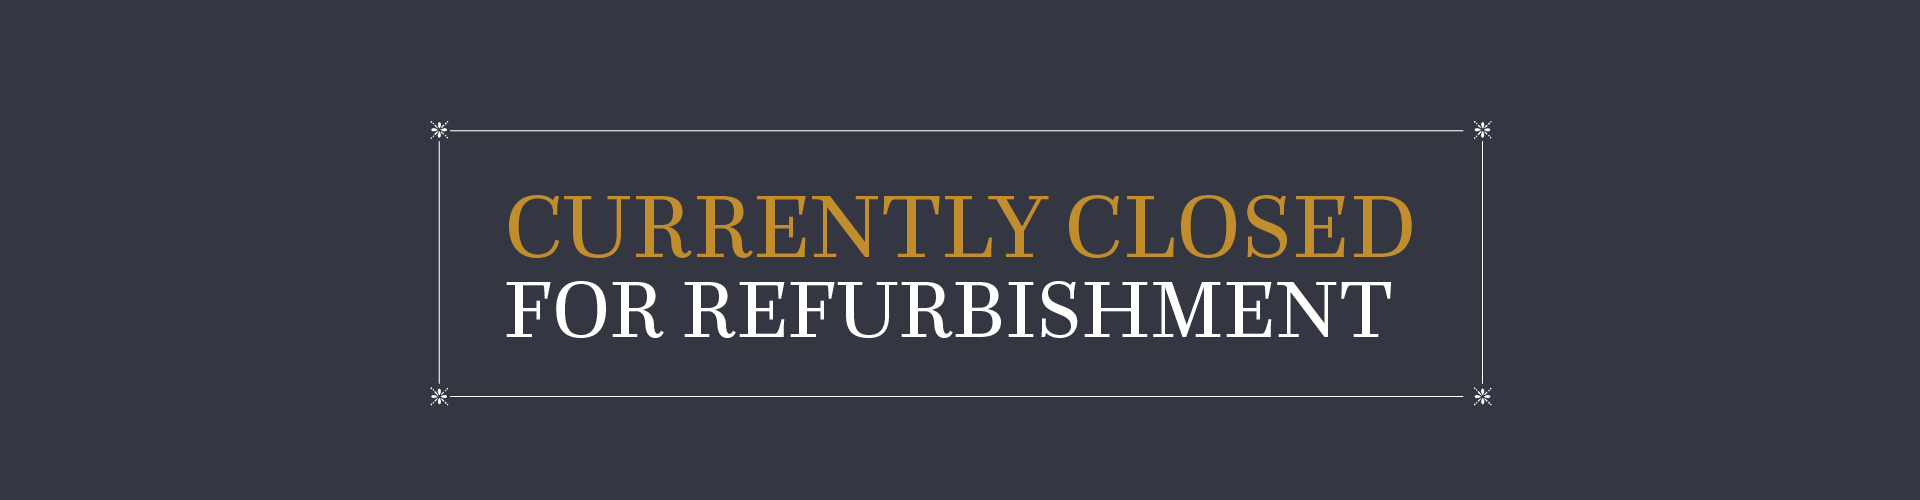 We are now closed for refurbishment.